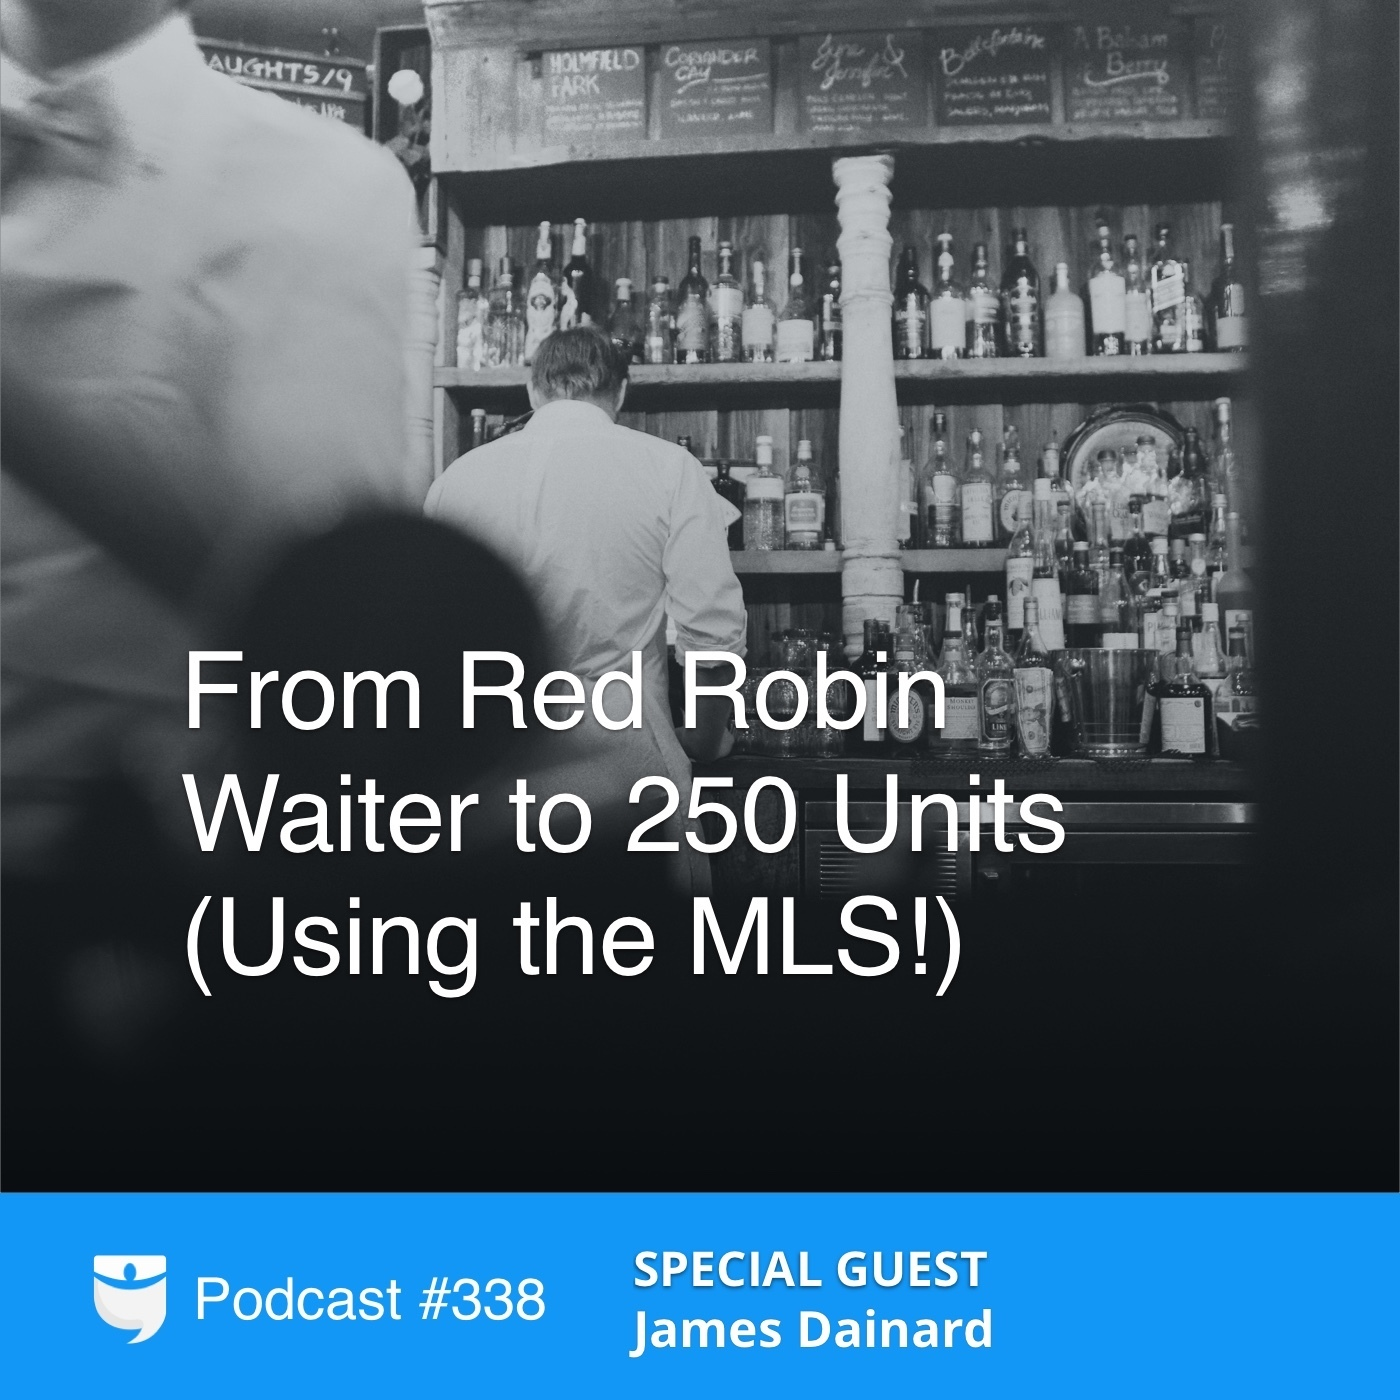 #338: From Red Robin Waiter to 250 Units (Using the MLS!) with James Dainard